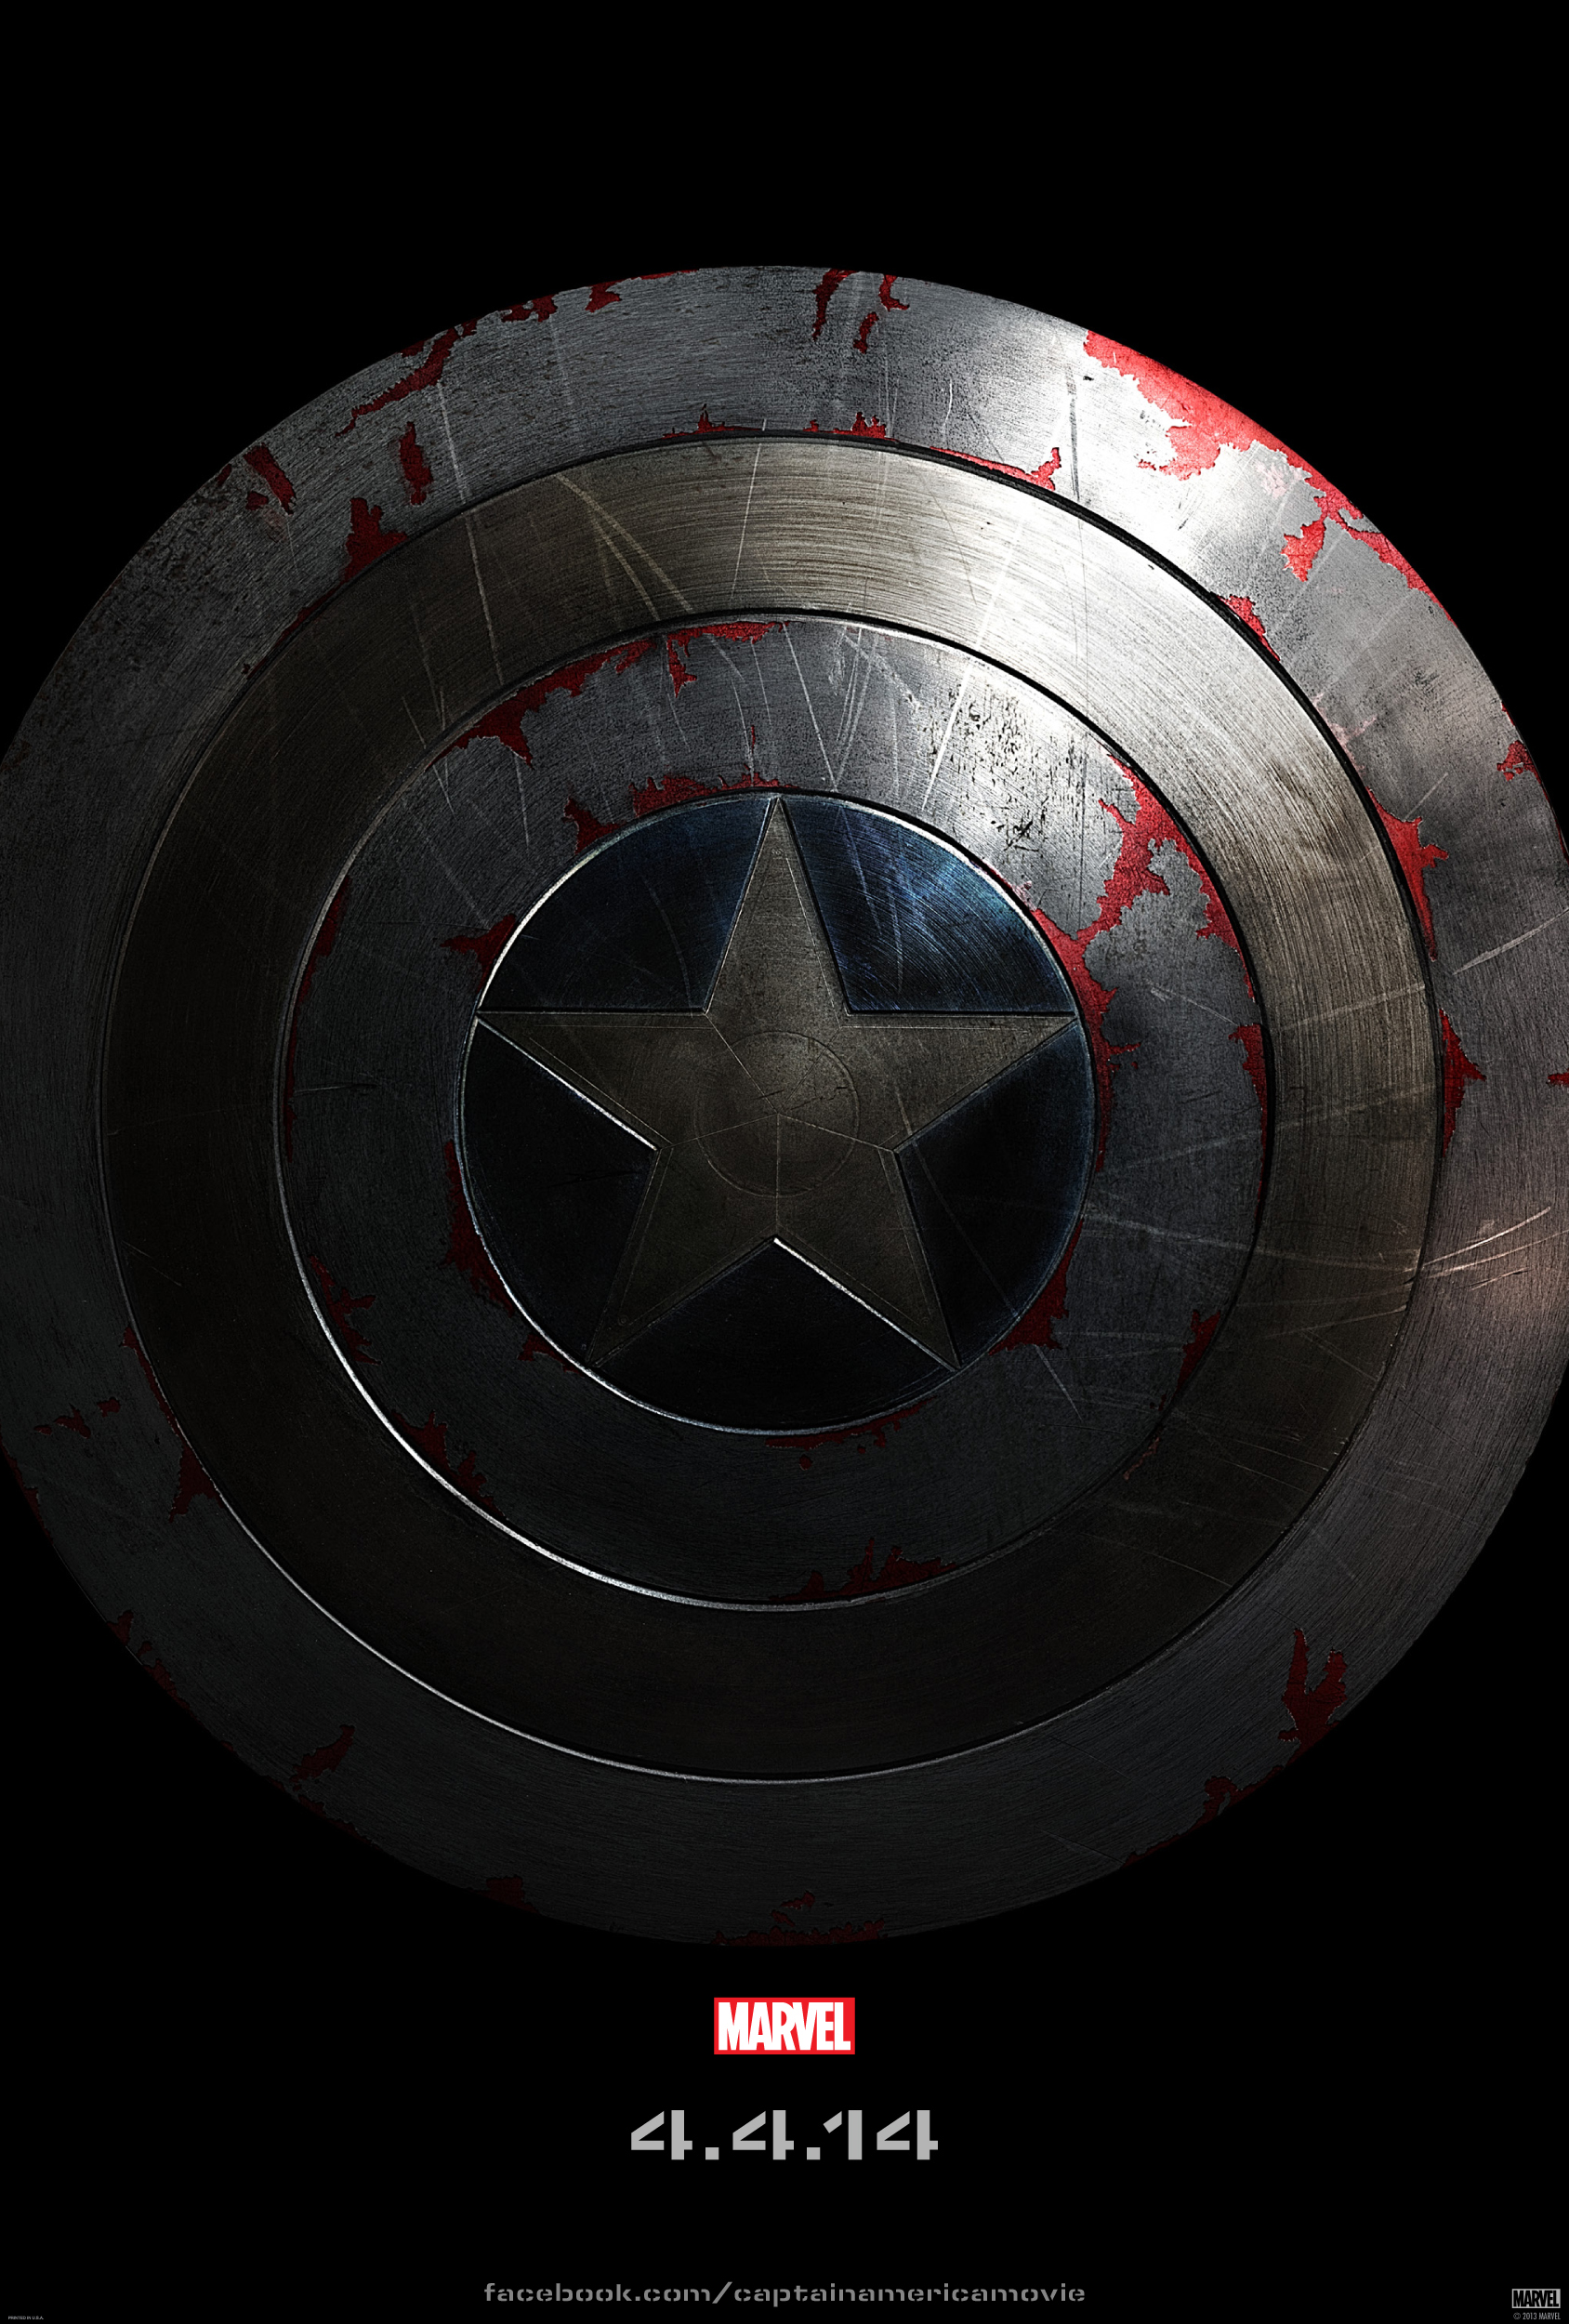 delirium entertainment captain america soldier winter will rogers steve modern role embrace romanoff agent fury nick widow black with natasha world struggles russo anthony georges april 2014 stan batroc where marvels avengers pick-up sequel studios disney announced date marvel zola release announcement trailer mulvey sitwell jack hernndez rollins callan leaper notes